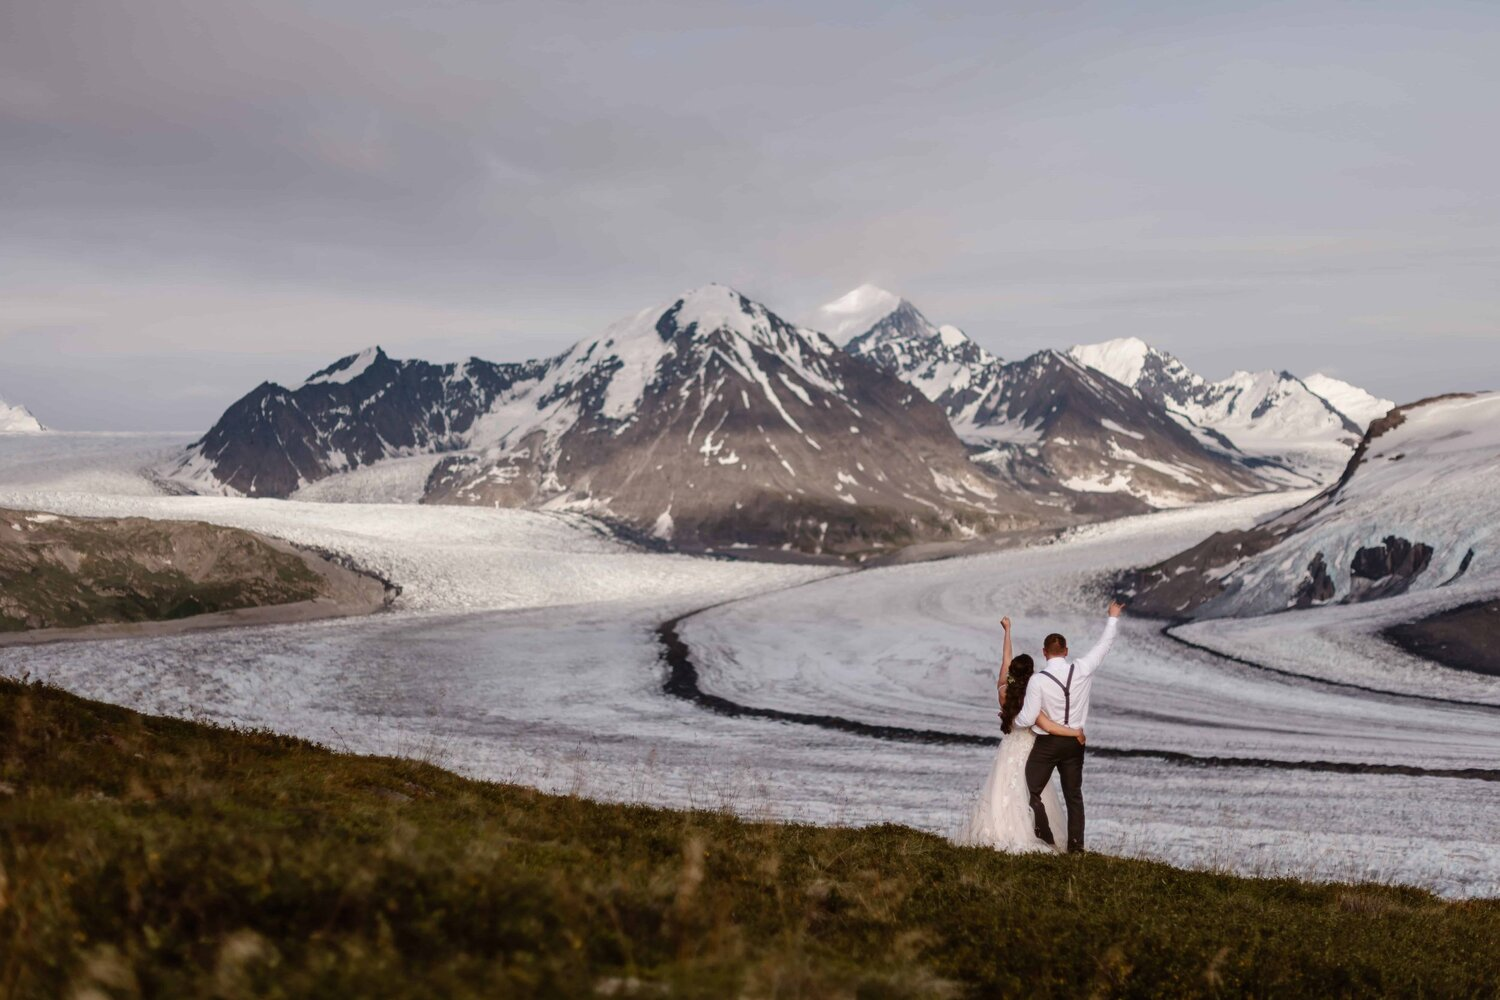 Bride and groom raise their hands while looking at the snowy mountains.